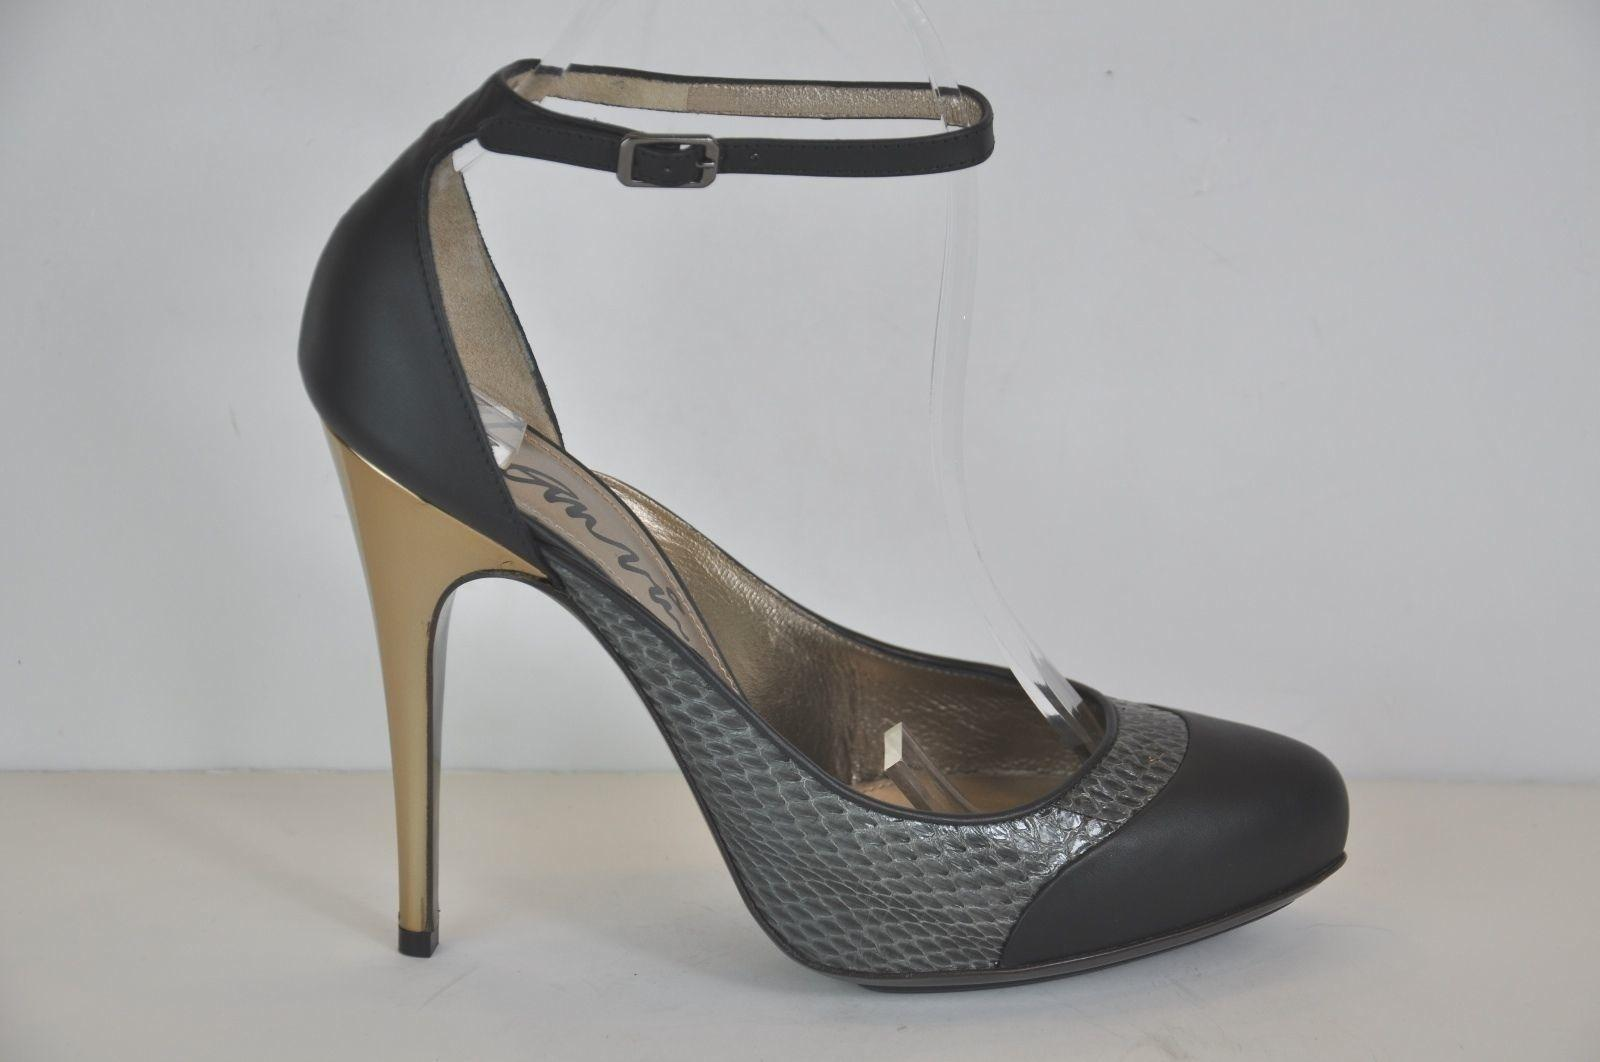 clearance get authentic Lanvin Python Round-Toe Pumps free shipping good selling sale purchase buy cheap cost best sale aFAN5fYzxU